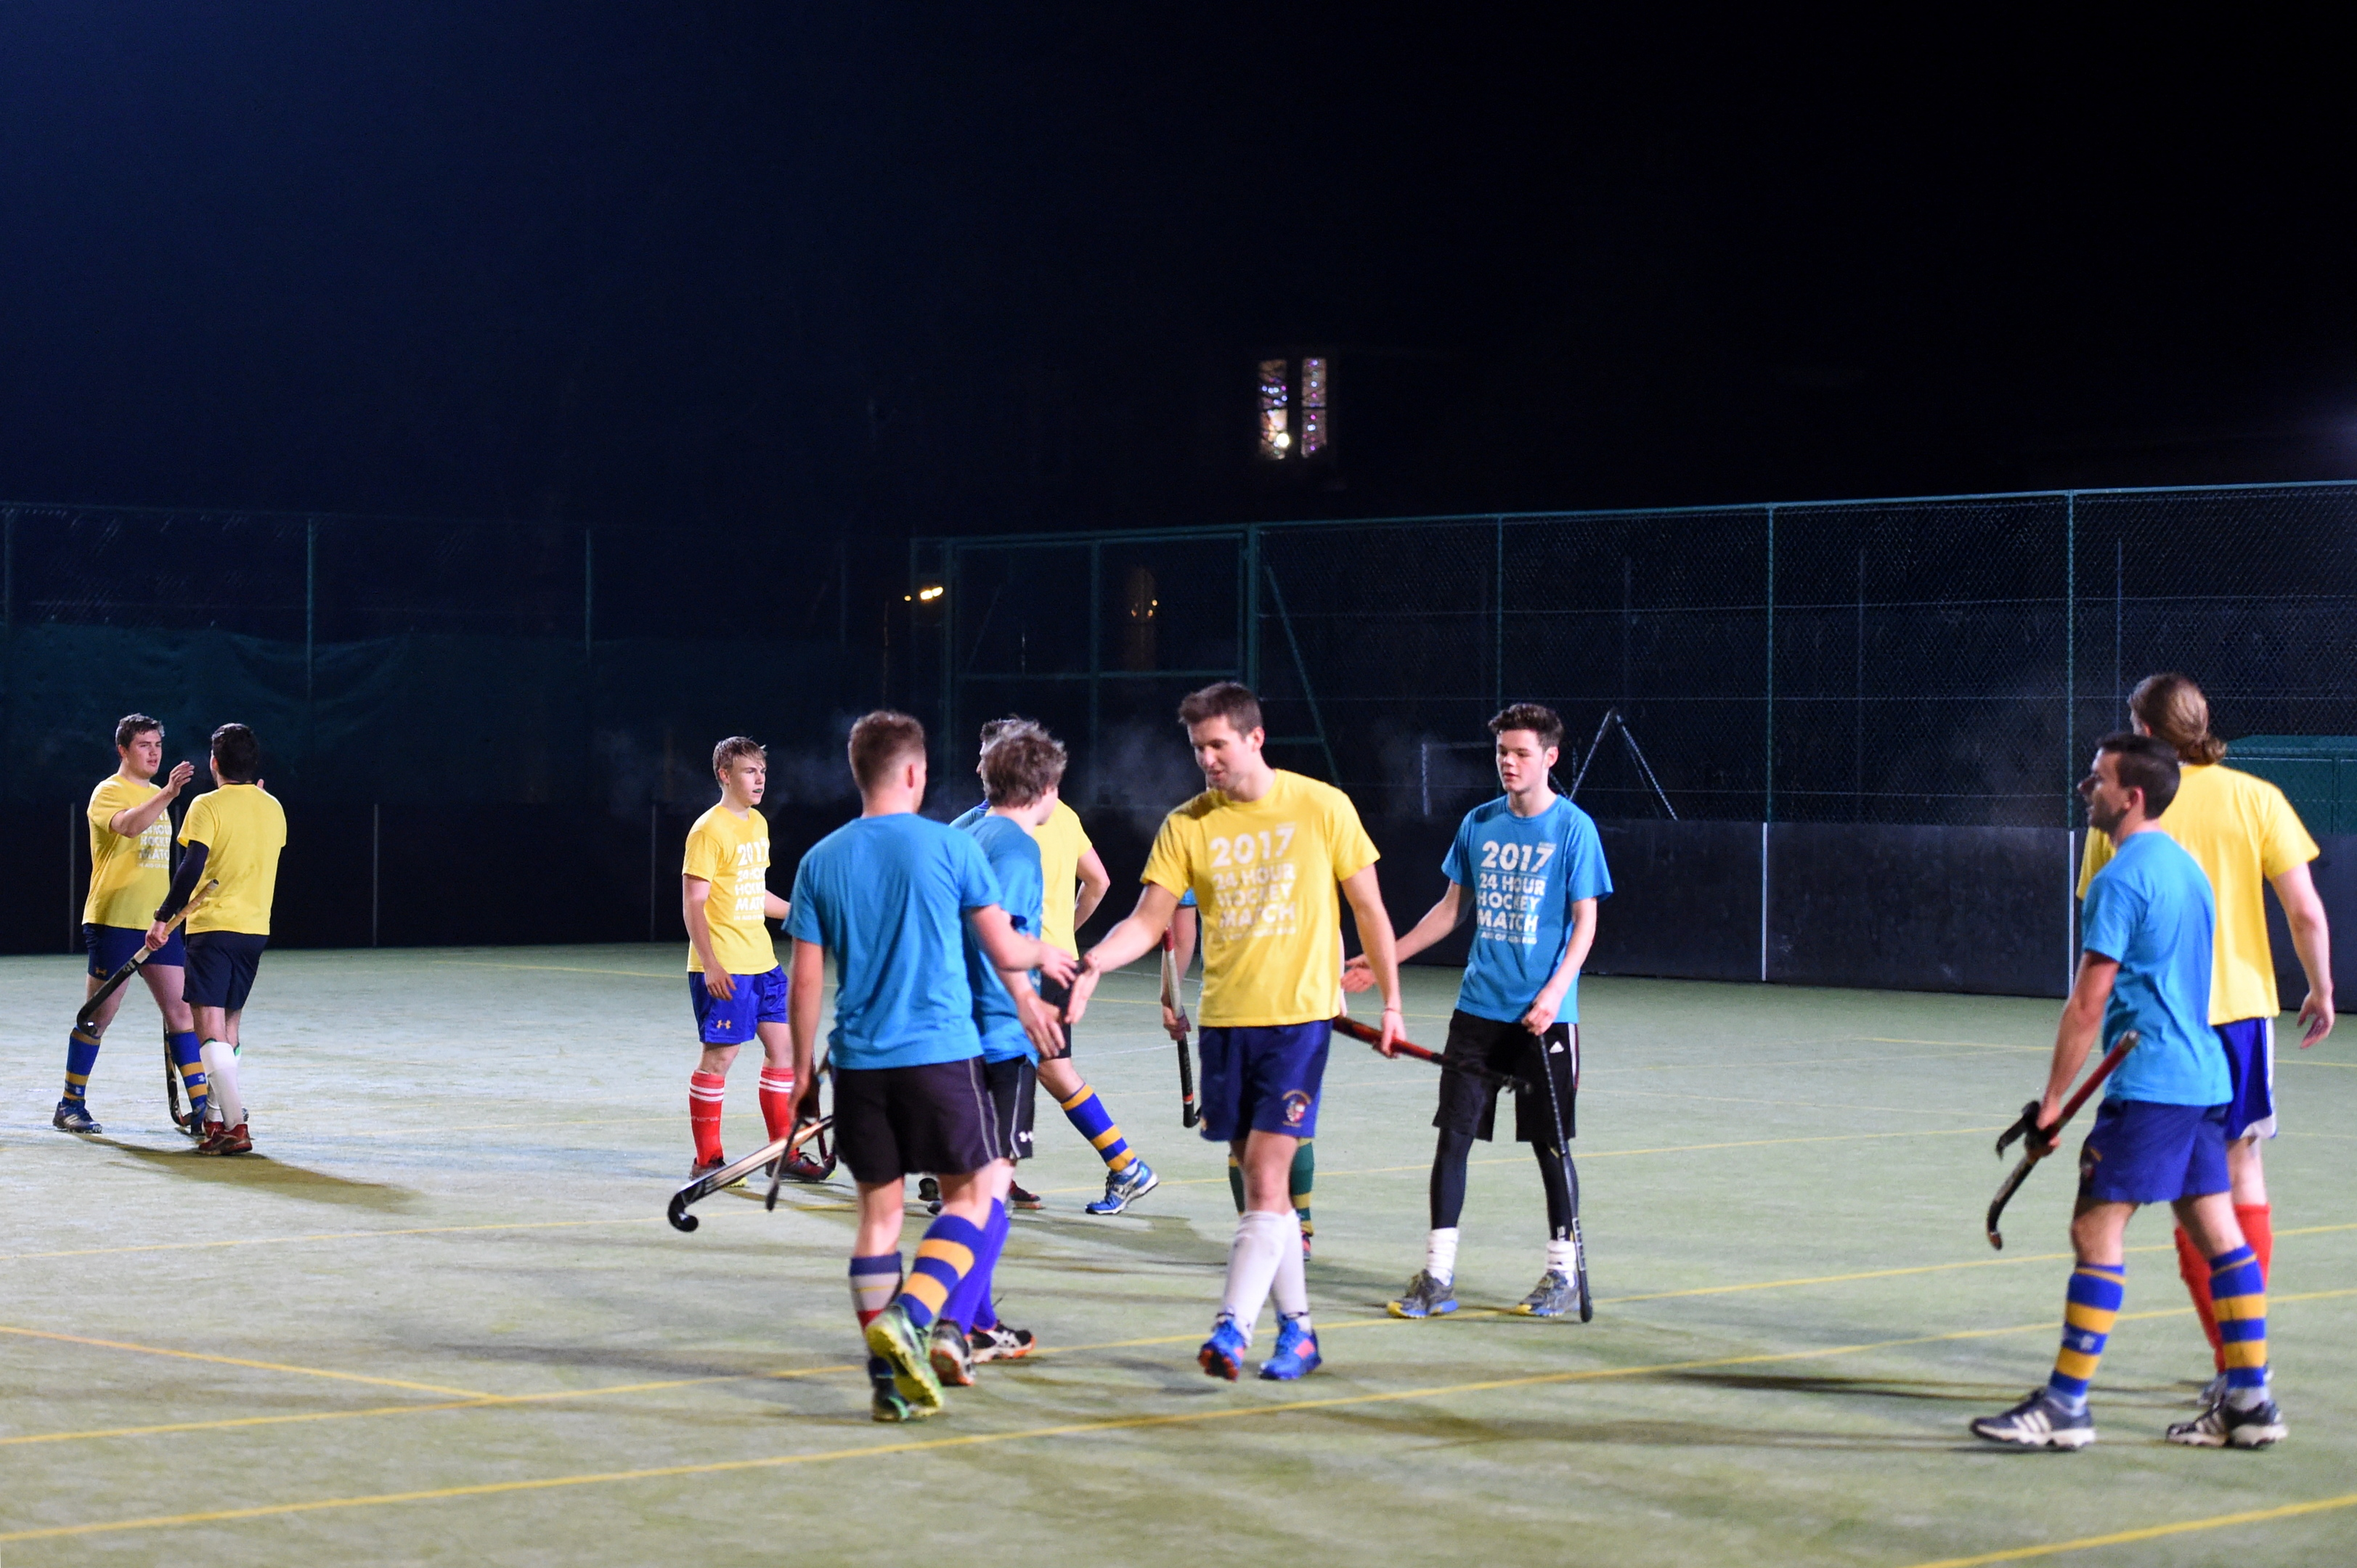 Players shaking hands after the 24-hour match at King's Pavilion.